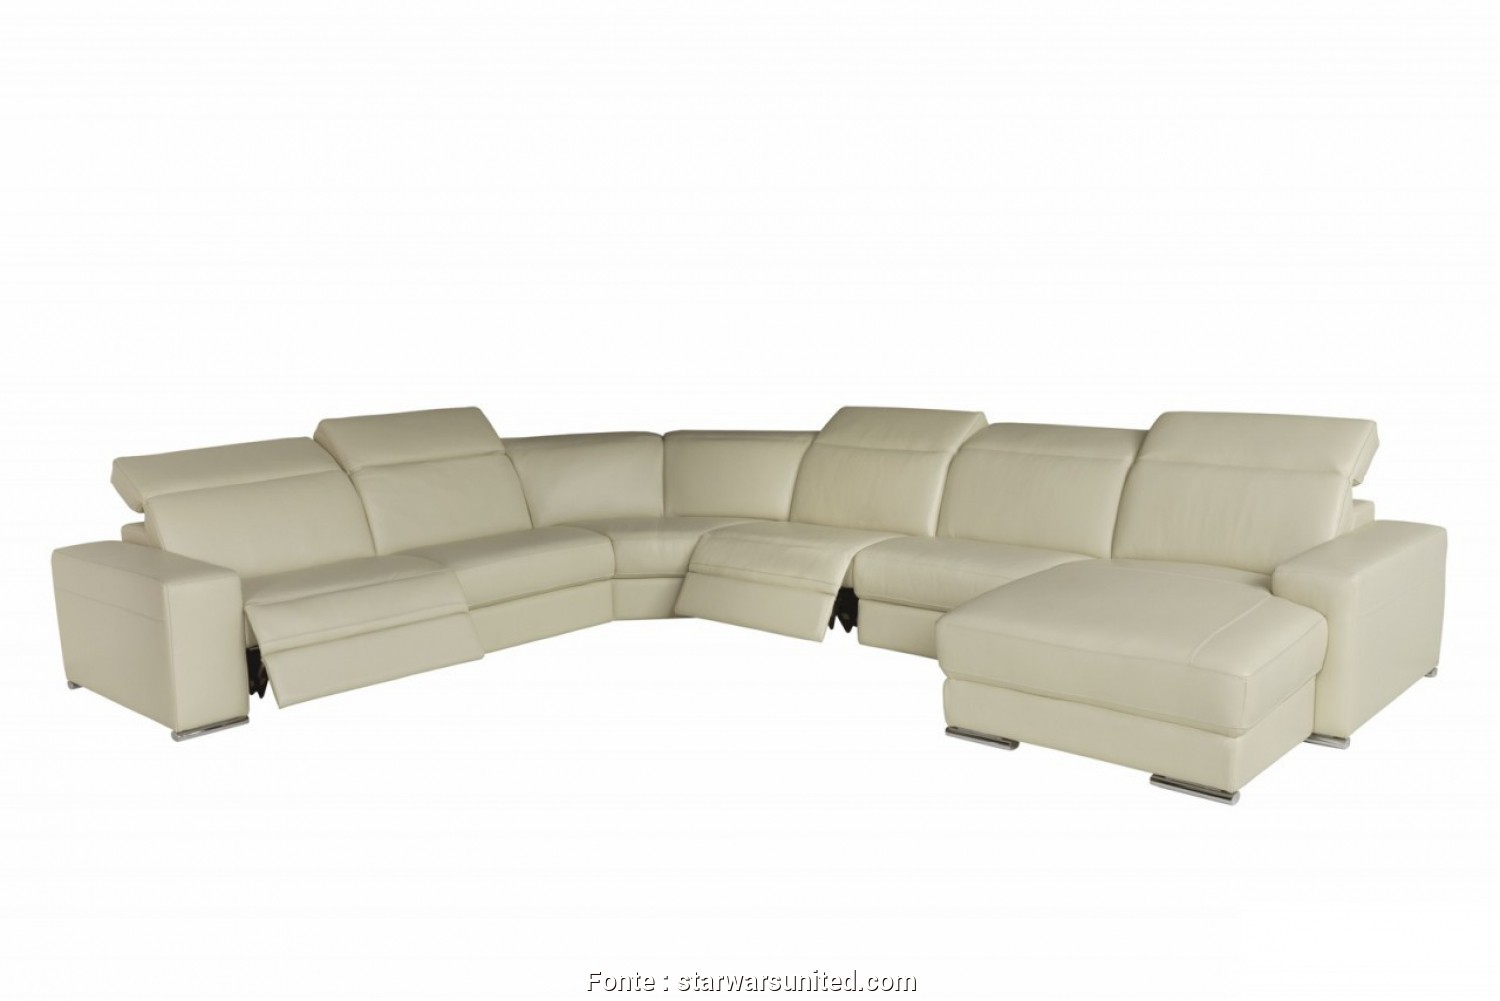 Divani Chatodax Verona, Sbalorditivo Amusing Chateau D Ax Leather Sofa Mosto Sectional With Recliners Italmoda Furniture Store U217